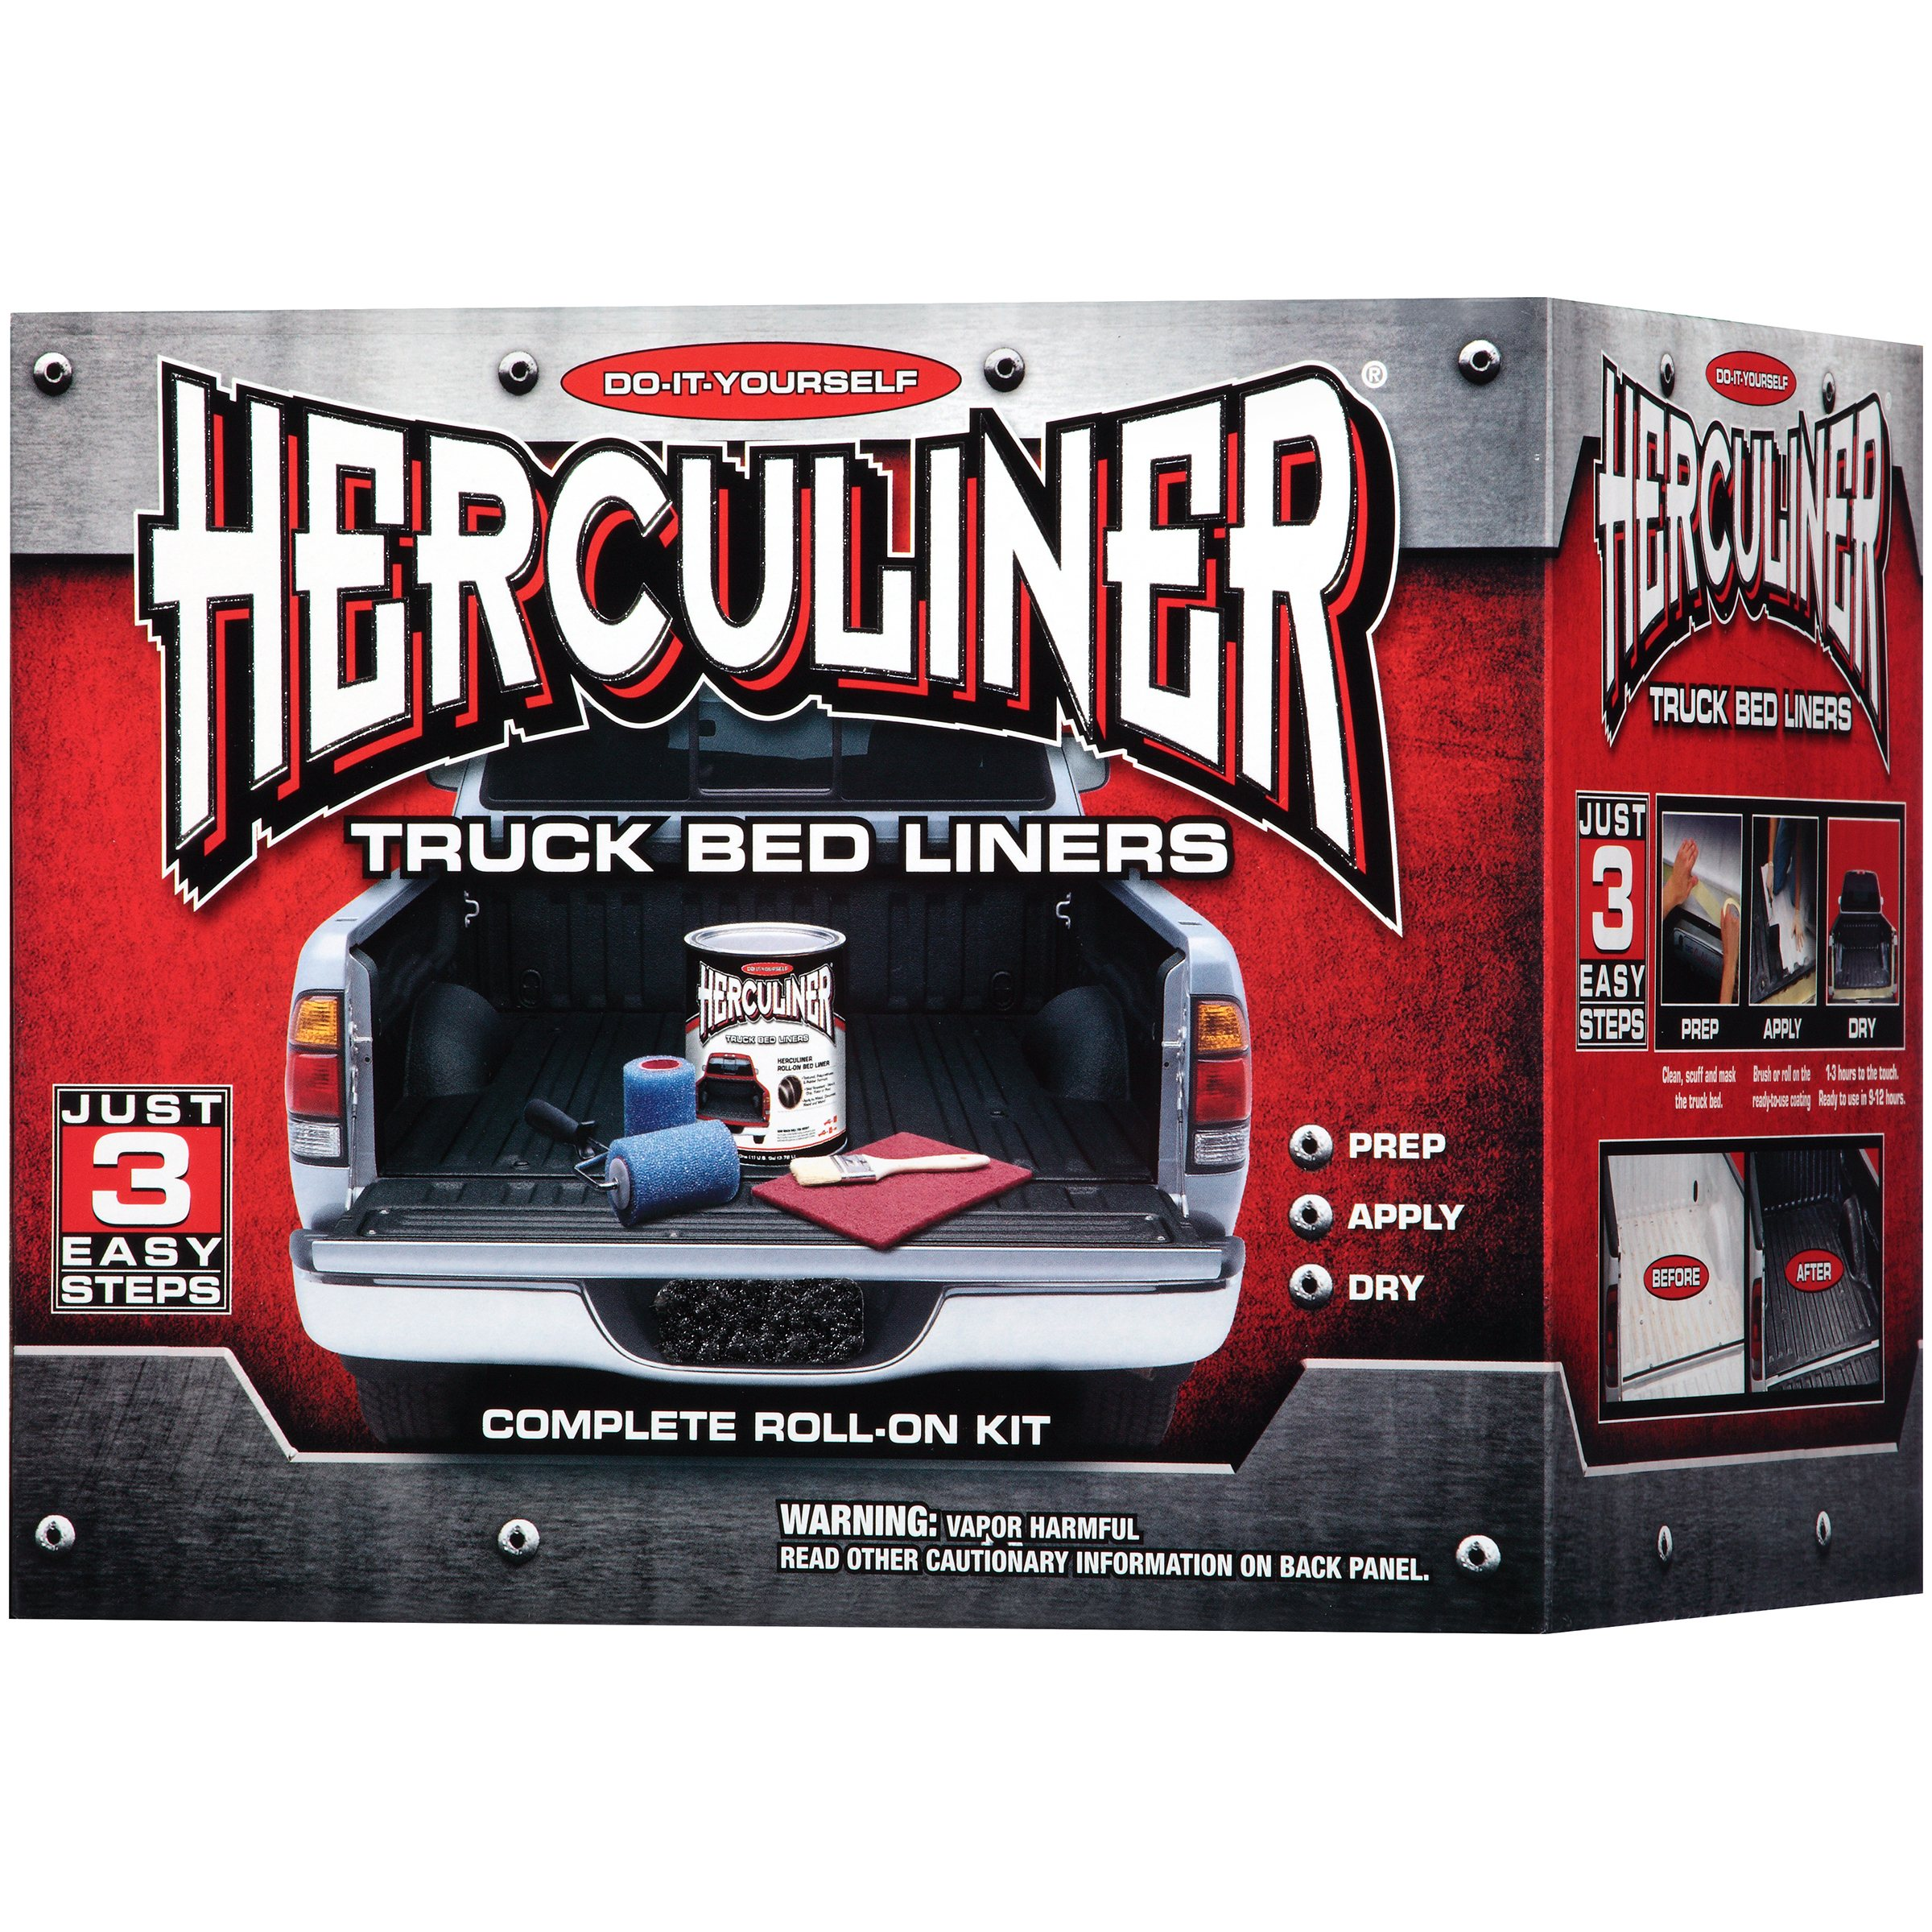 Herculiner® Complete Roll-On Truck Bed Liner 6 pc Kit